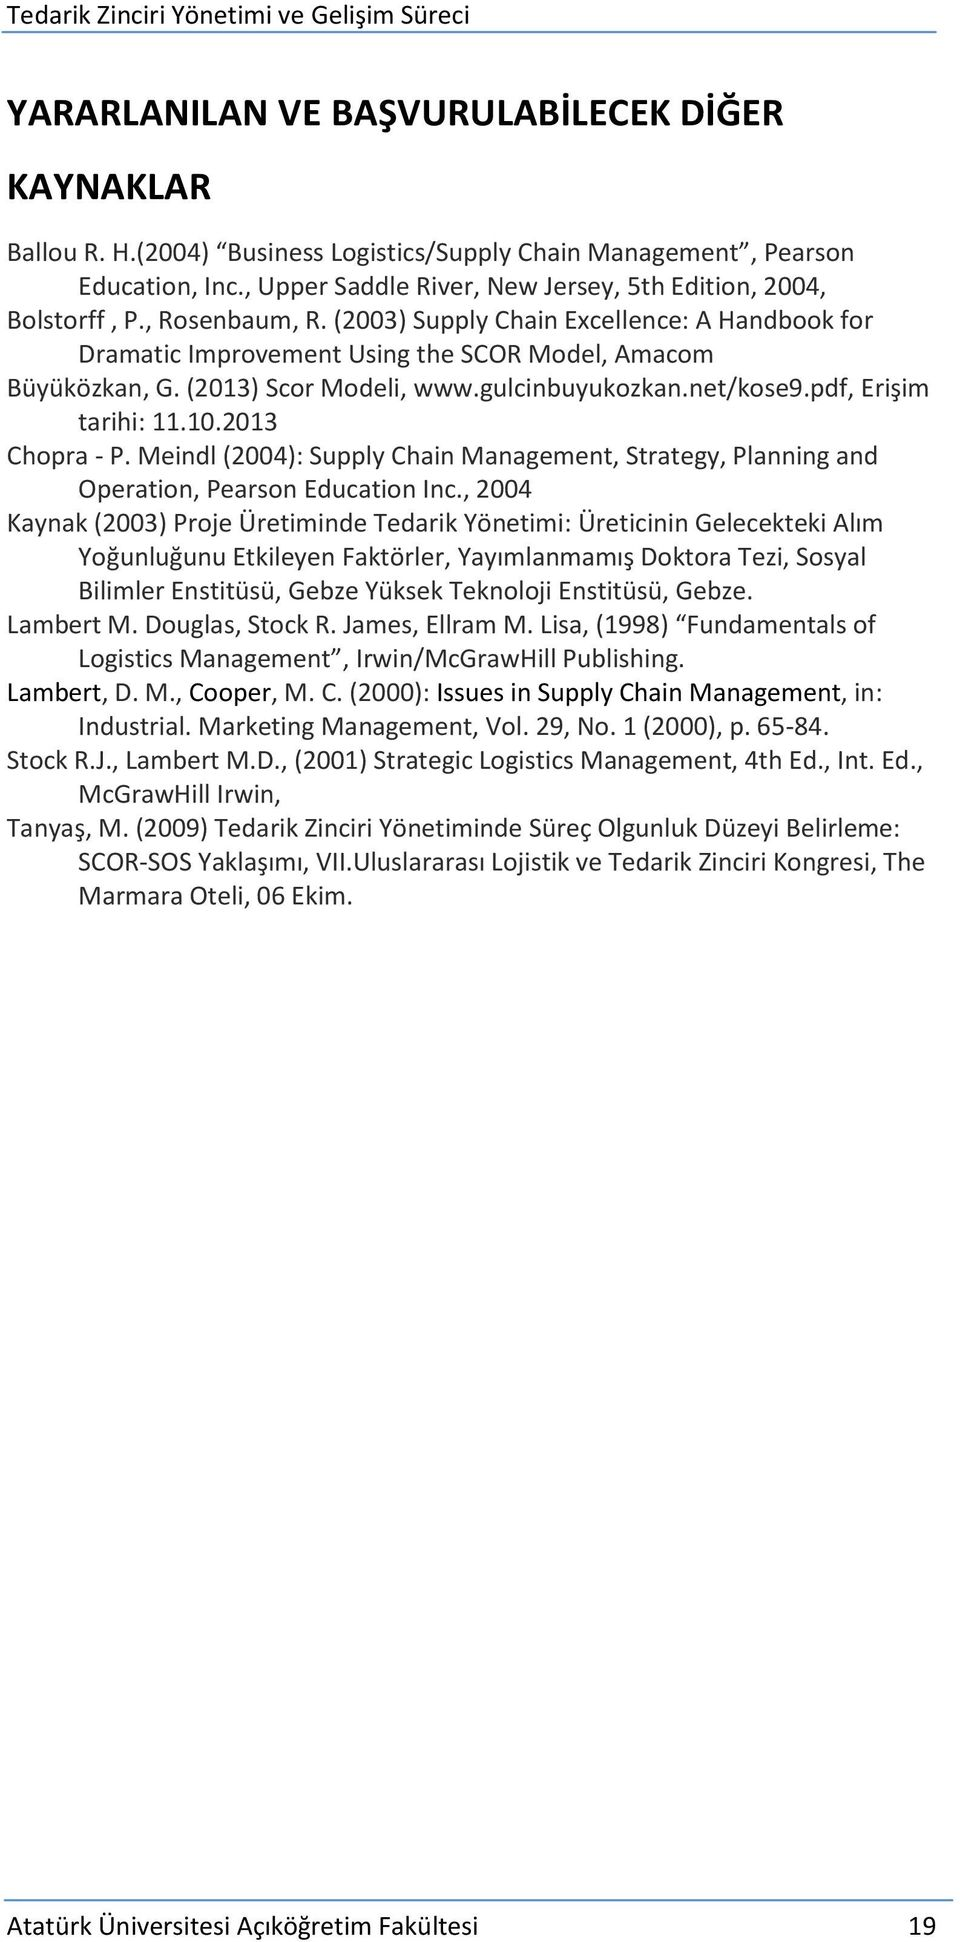 (2013) Scor Modeli, www.gulcinbuyukozkan.net/kose9.pdf, Erişim tarihi: 11.10.2013 Chopra - P. Meindl (2004): Supply Chain Management, Strategy, Planning and Operation, Pearson Education Inc.